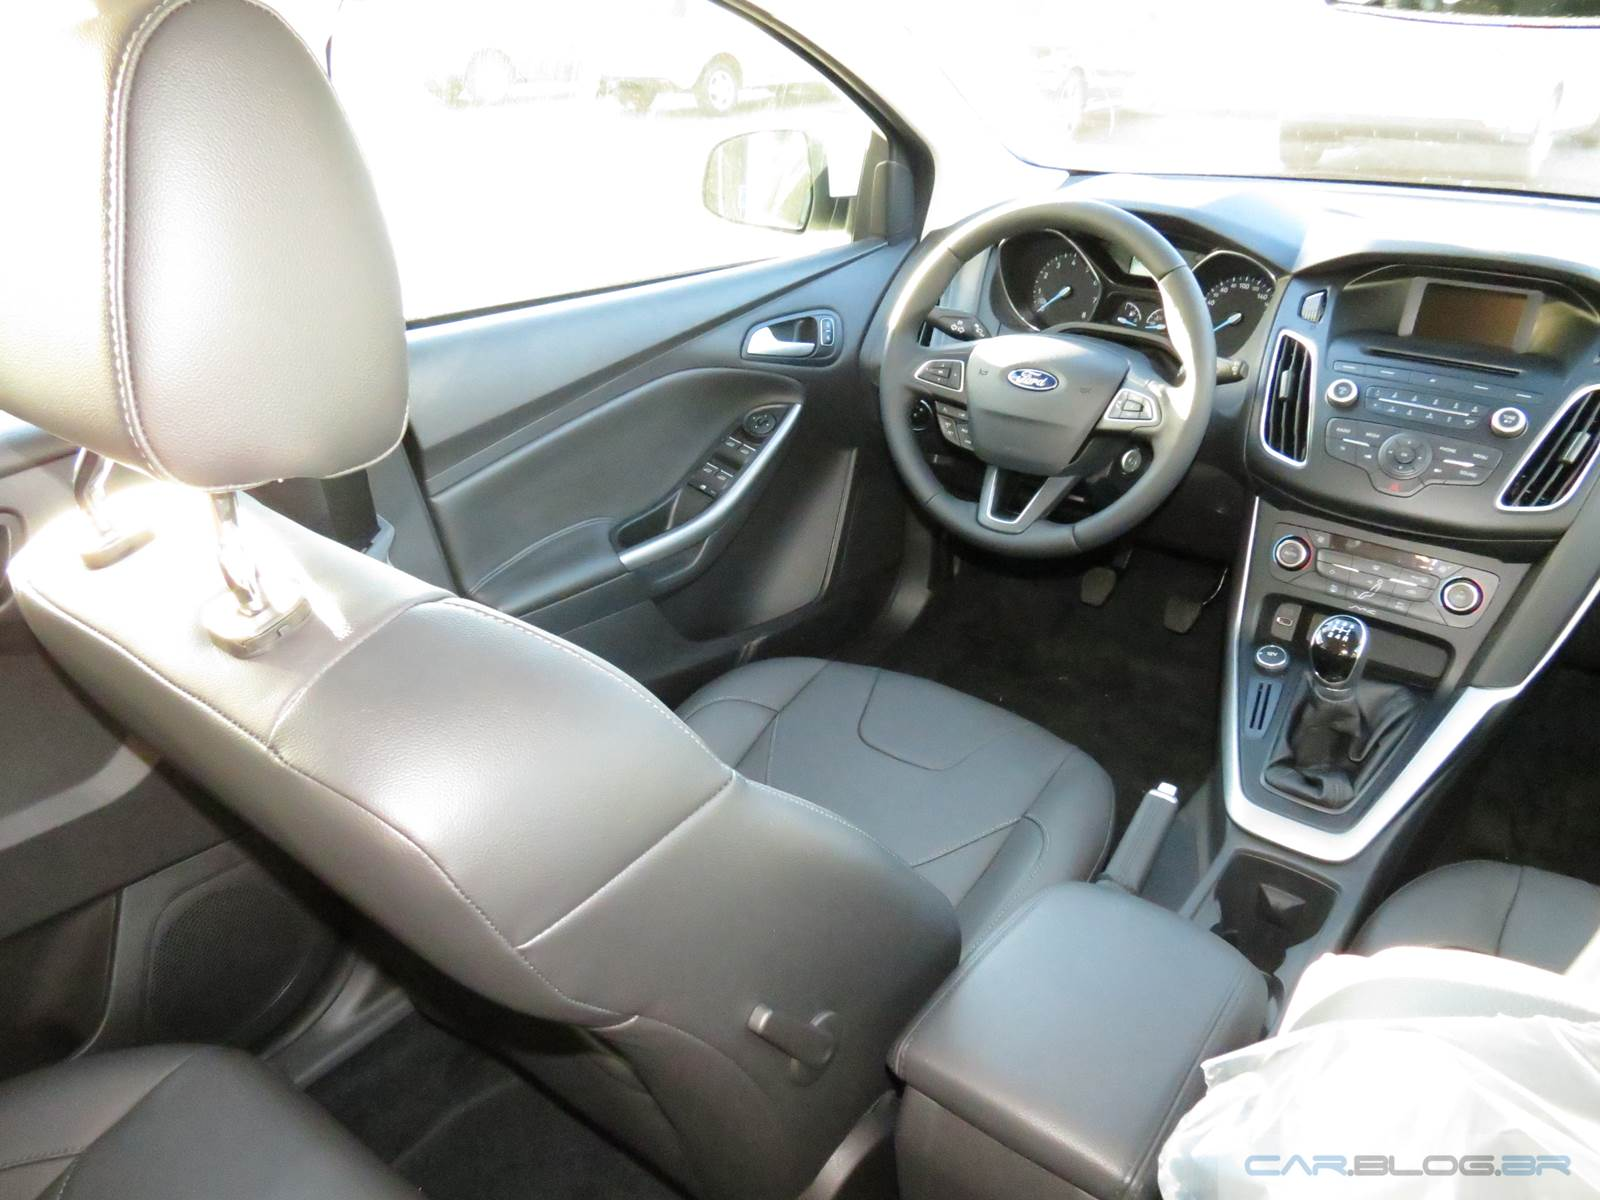 Ford Focus SE 1.6 Plus Manual - interior